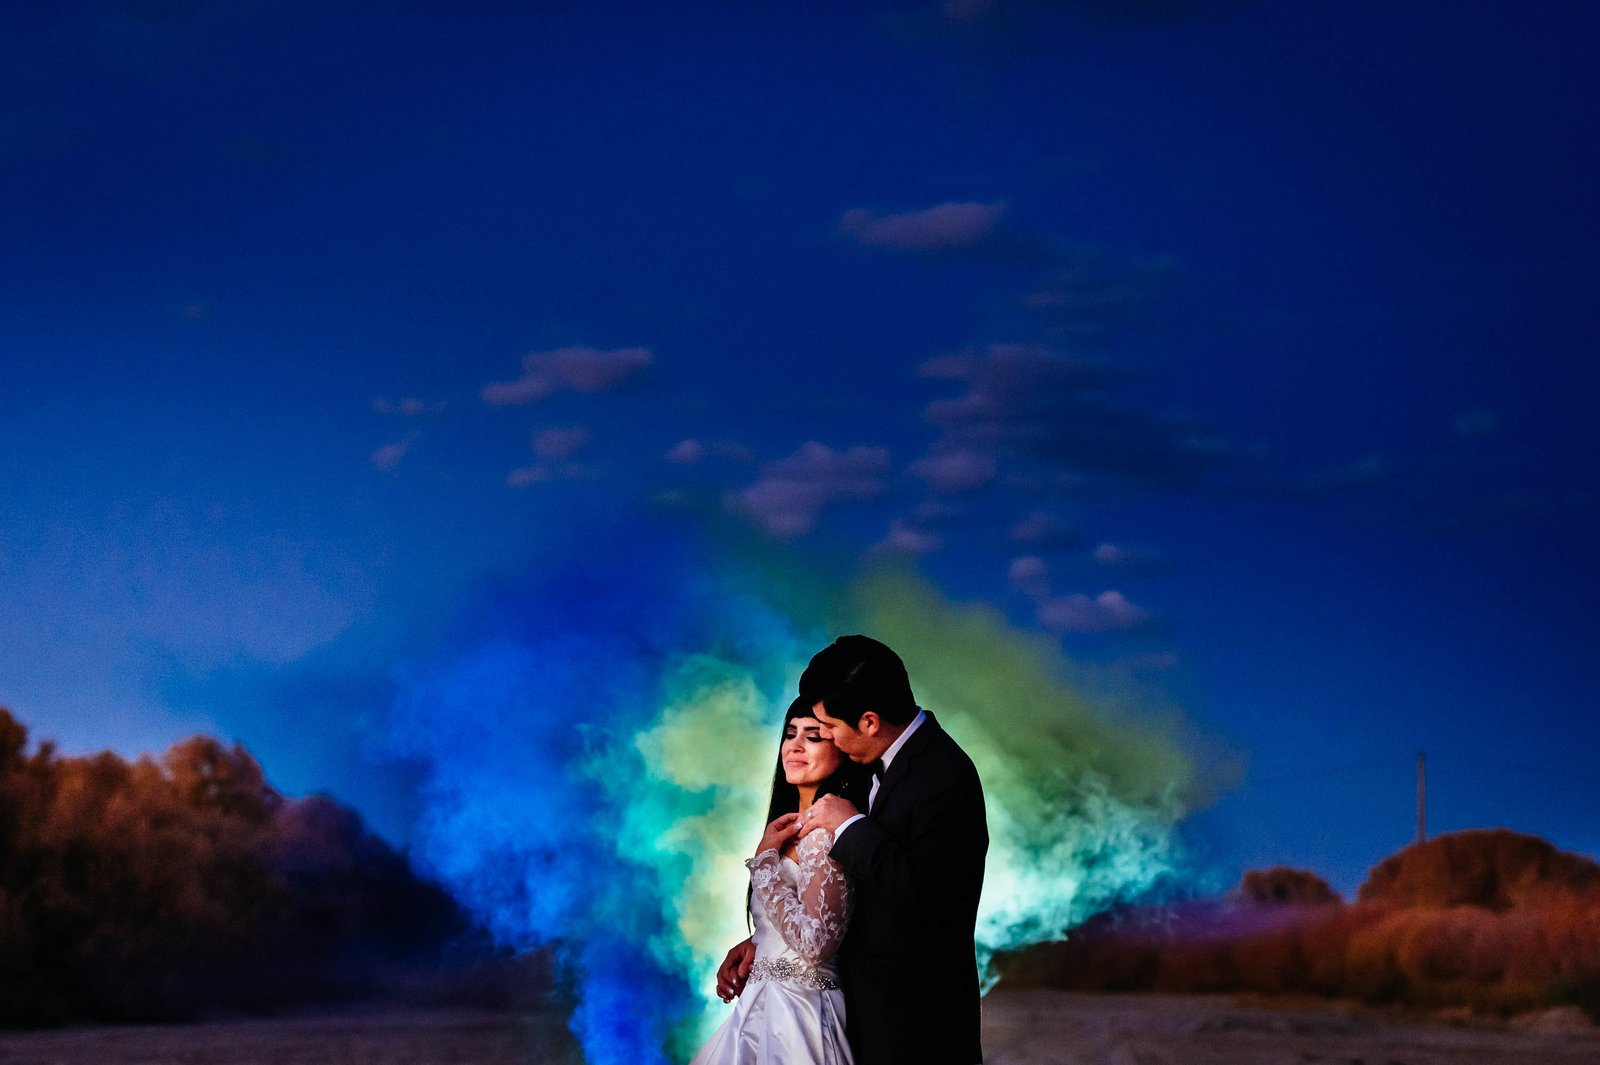 243-El-paso-wedding-photographer-El Paso Wedding Photographer_P26